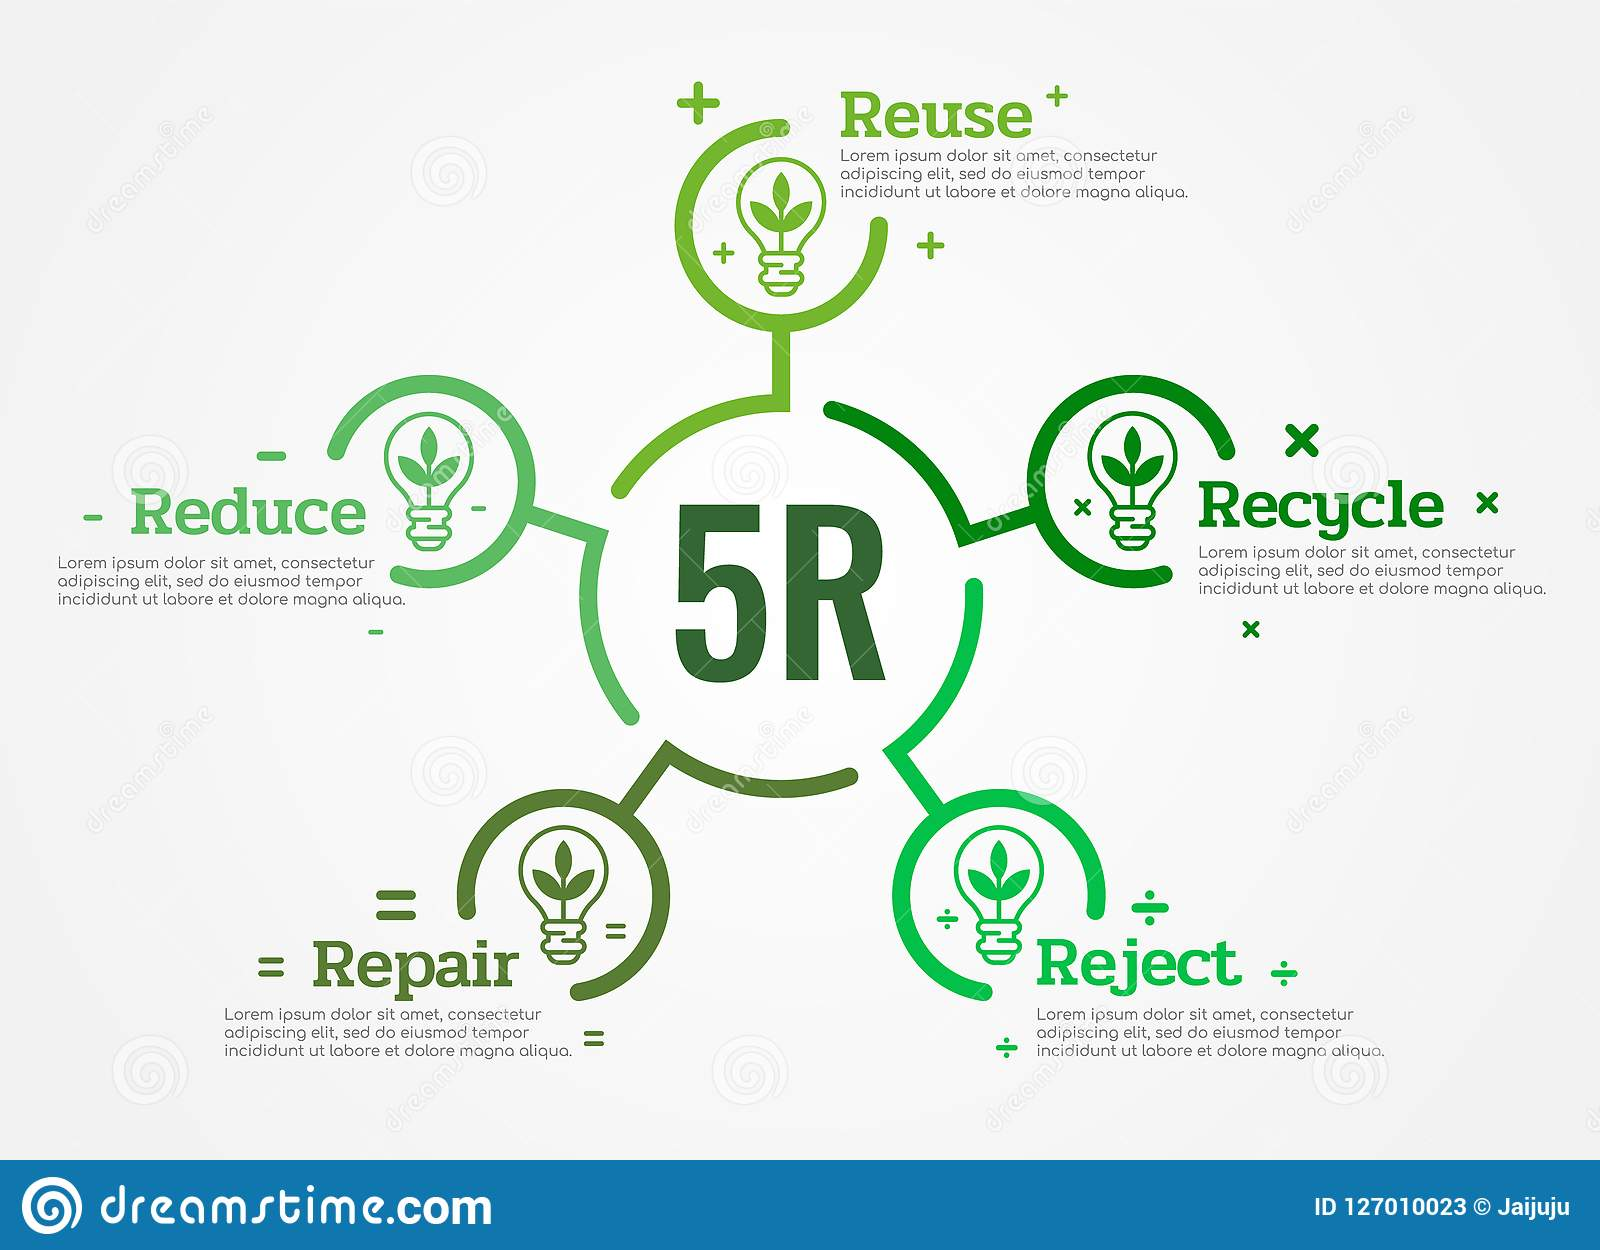 5r Chart Reduce Reuse Recycle Repair Reject With Leaf Lamp Light Icon Sign And Text In Green